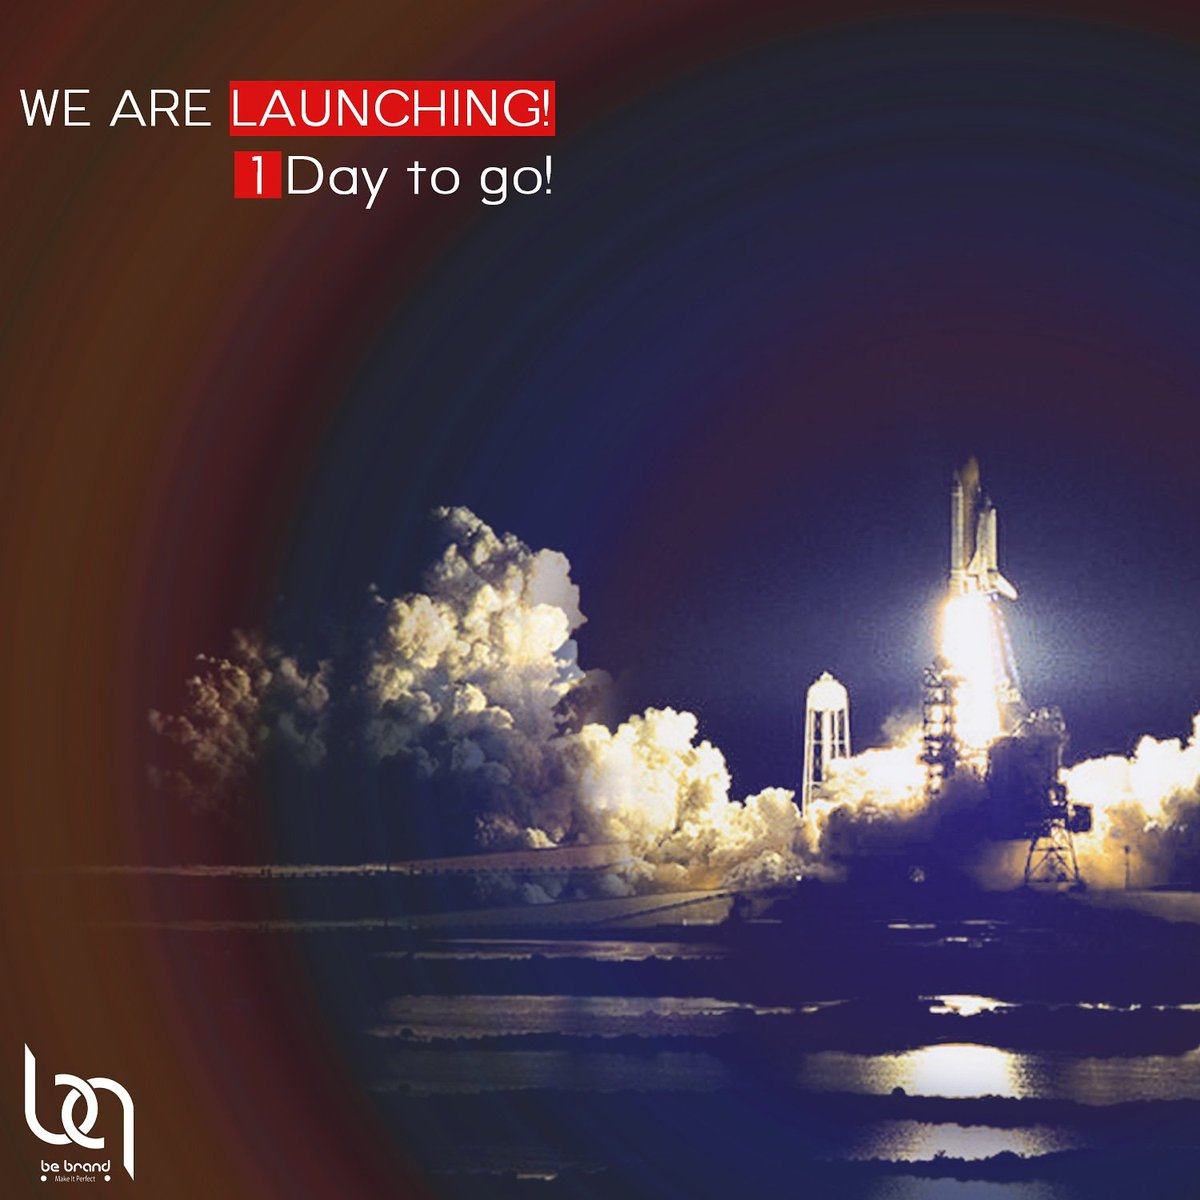 Grand launching heading towards grand ideas.  . . Yes !!  BeBrand is  going to rock   Stay tuned . . #advertising_agency #socialmediaadvertising #advertisinglife #advertisingcampaign #brandingstrategy #bebrandpic.twitter.com/hKqBaaiBsn